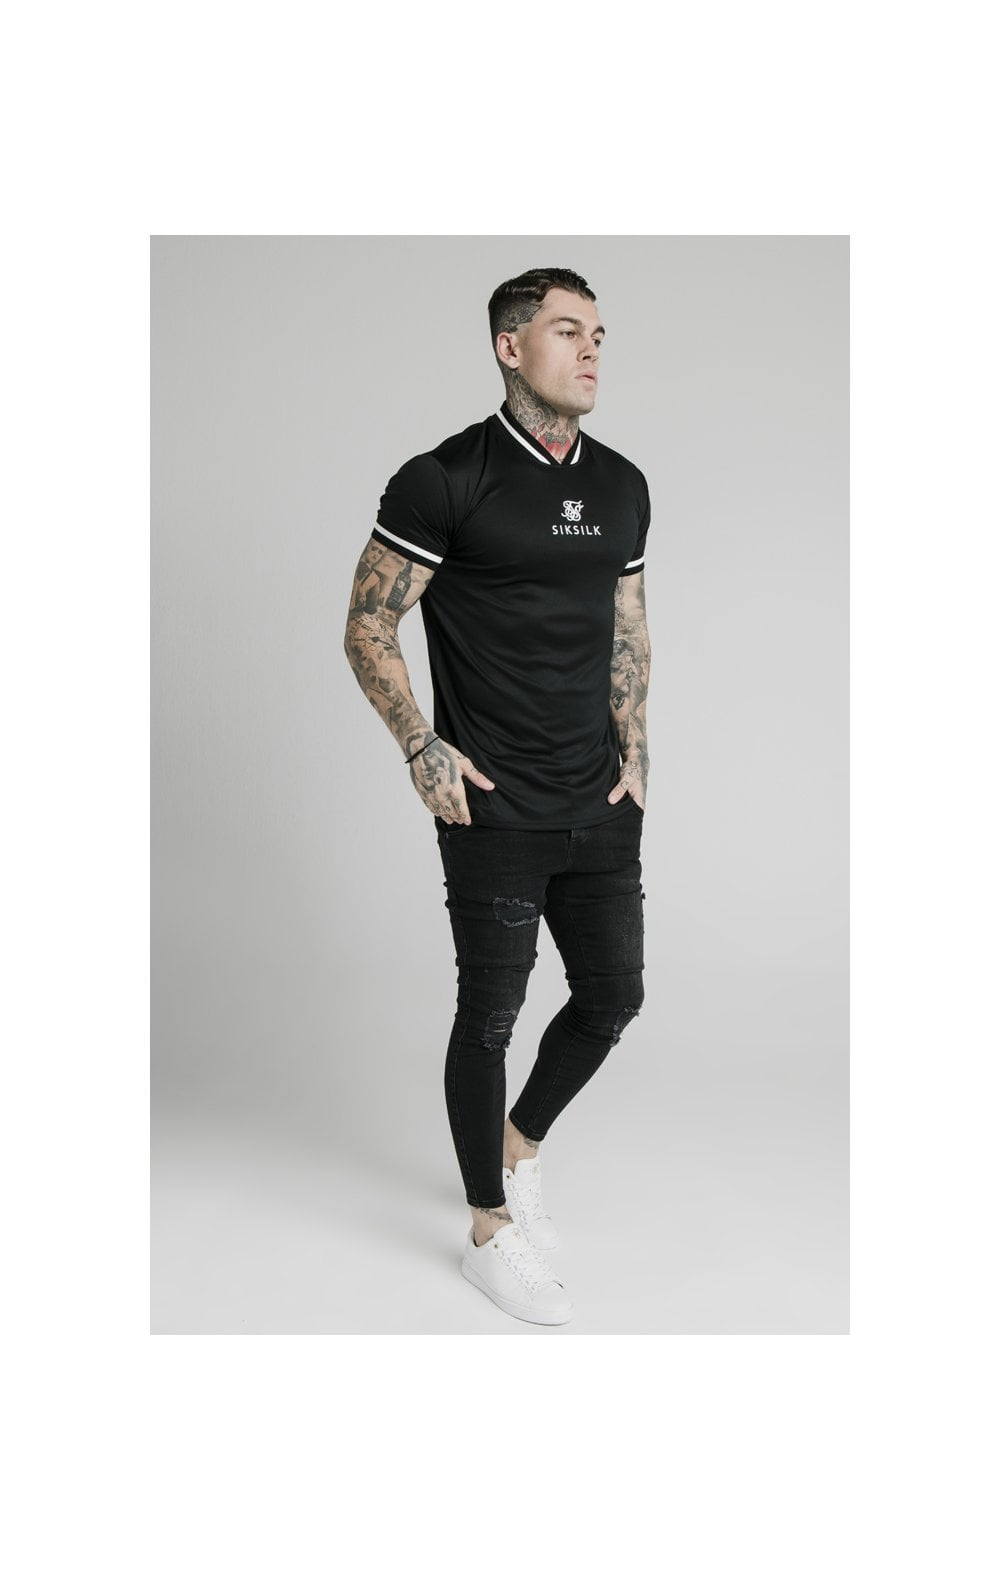 Load image into Gallery viewer, SikSilk S/S Poly Rib Collar Tee - Black (2)